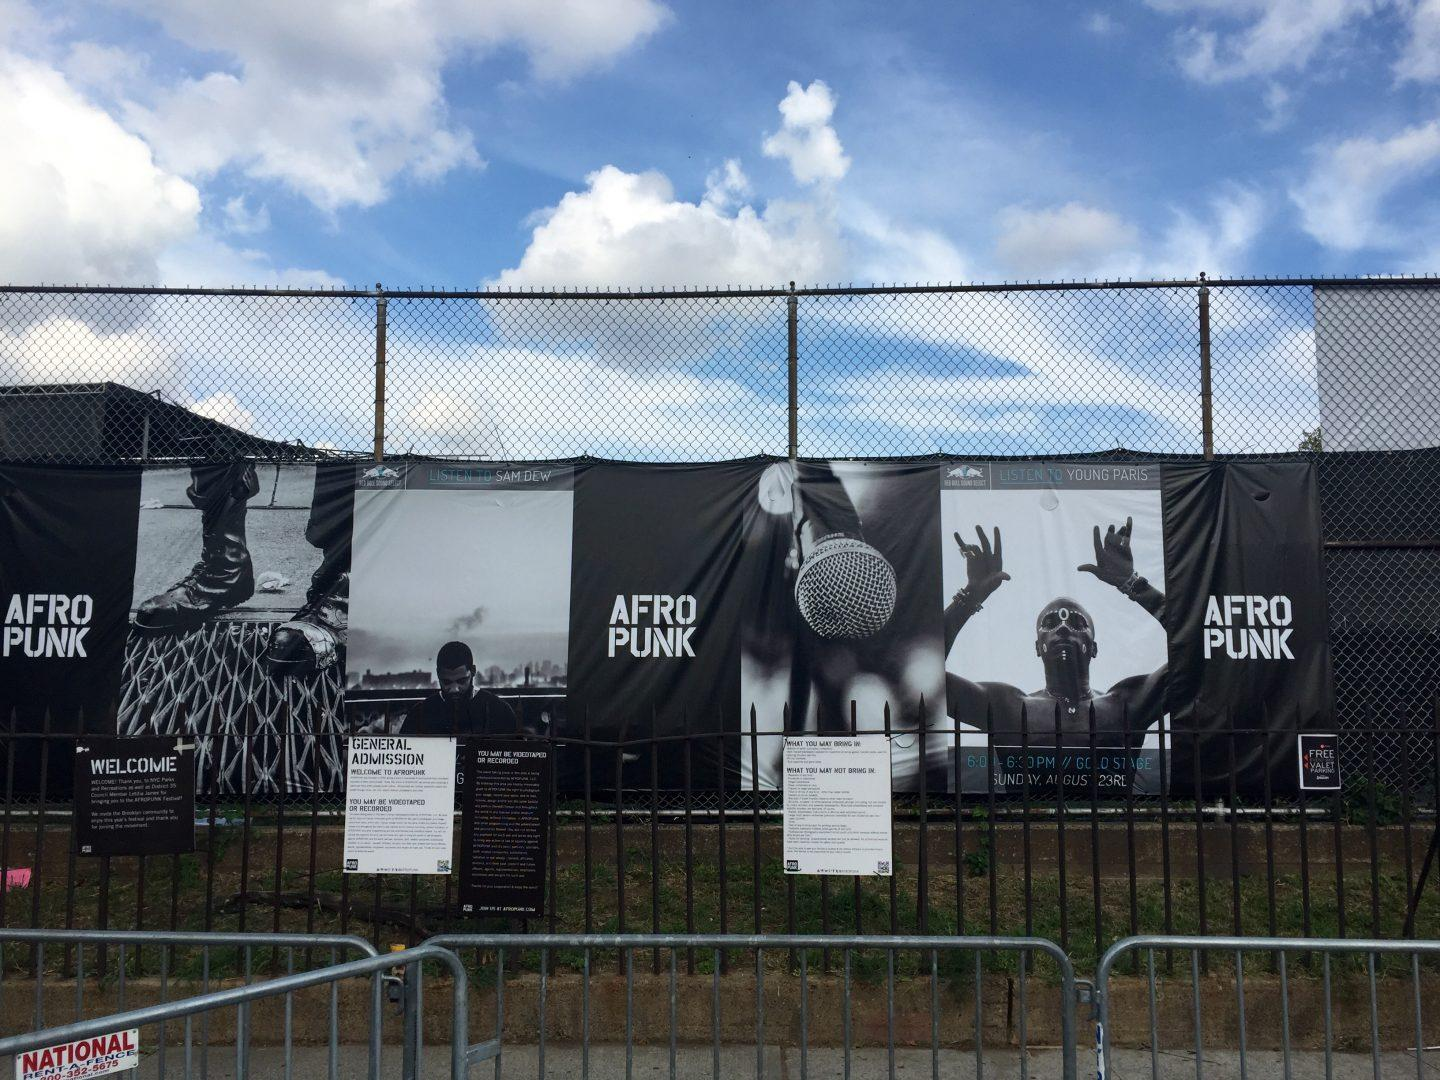 AFROPUNK's Messages of Activism Conflict with Artists' Lyrics